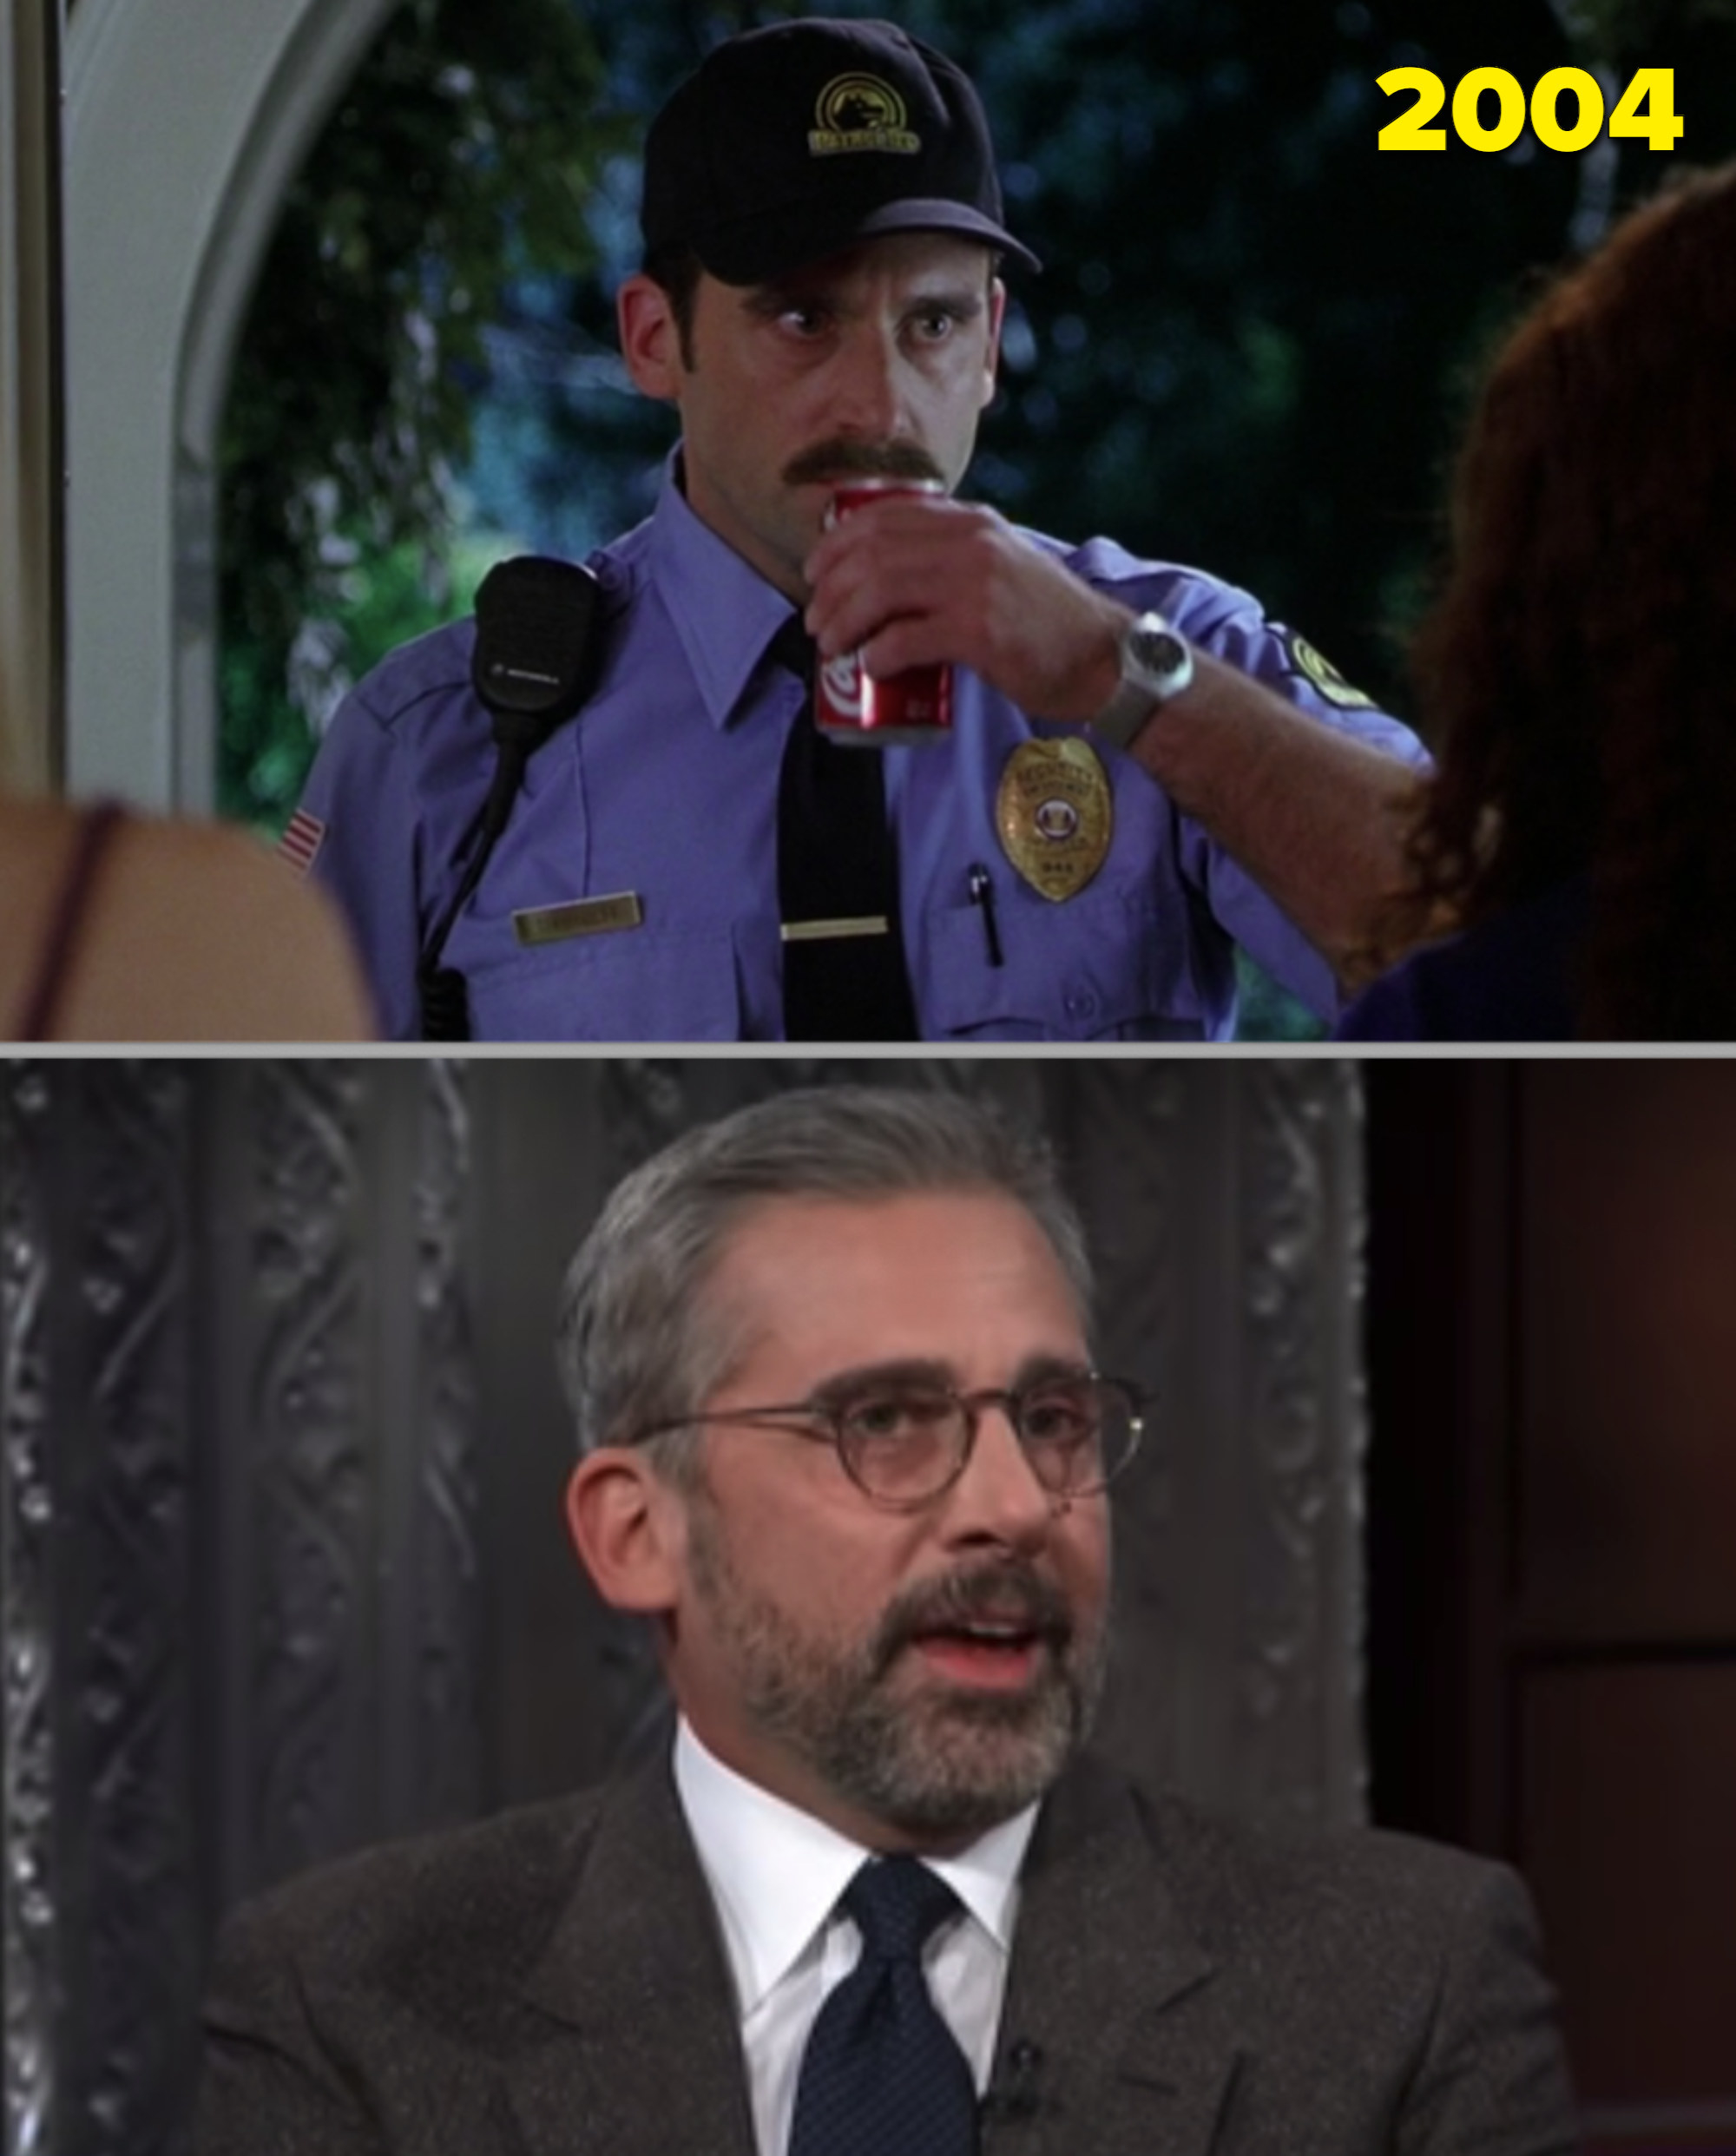 Steve Carell as the mall cob vs. him being interviewed by Stephen Colbert